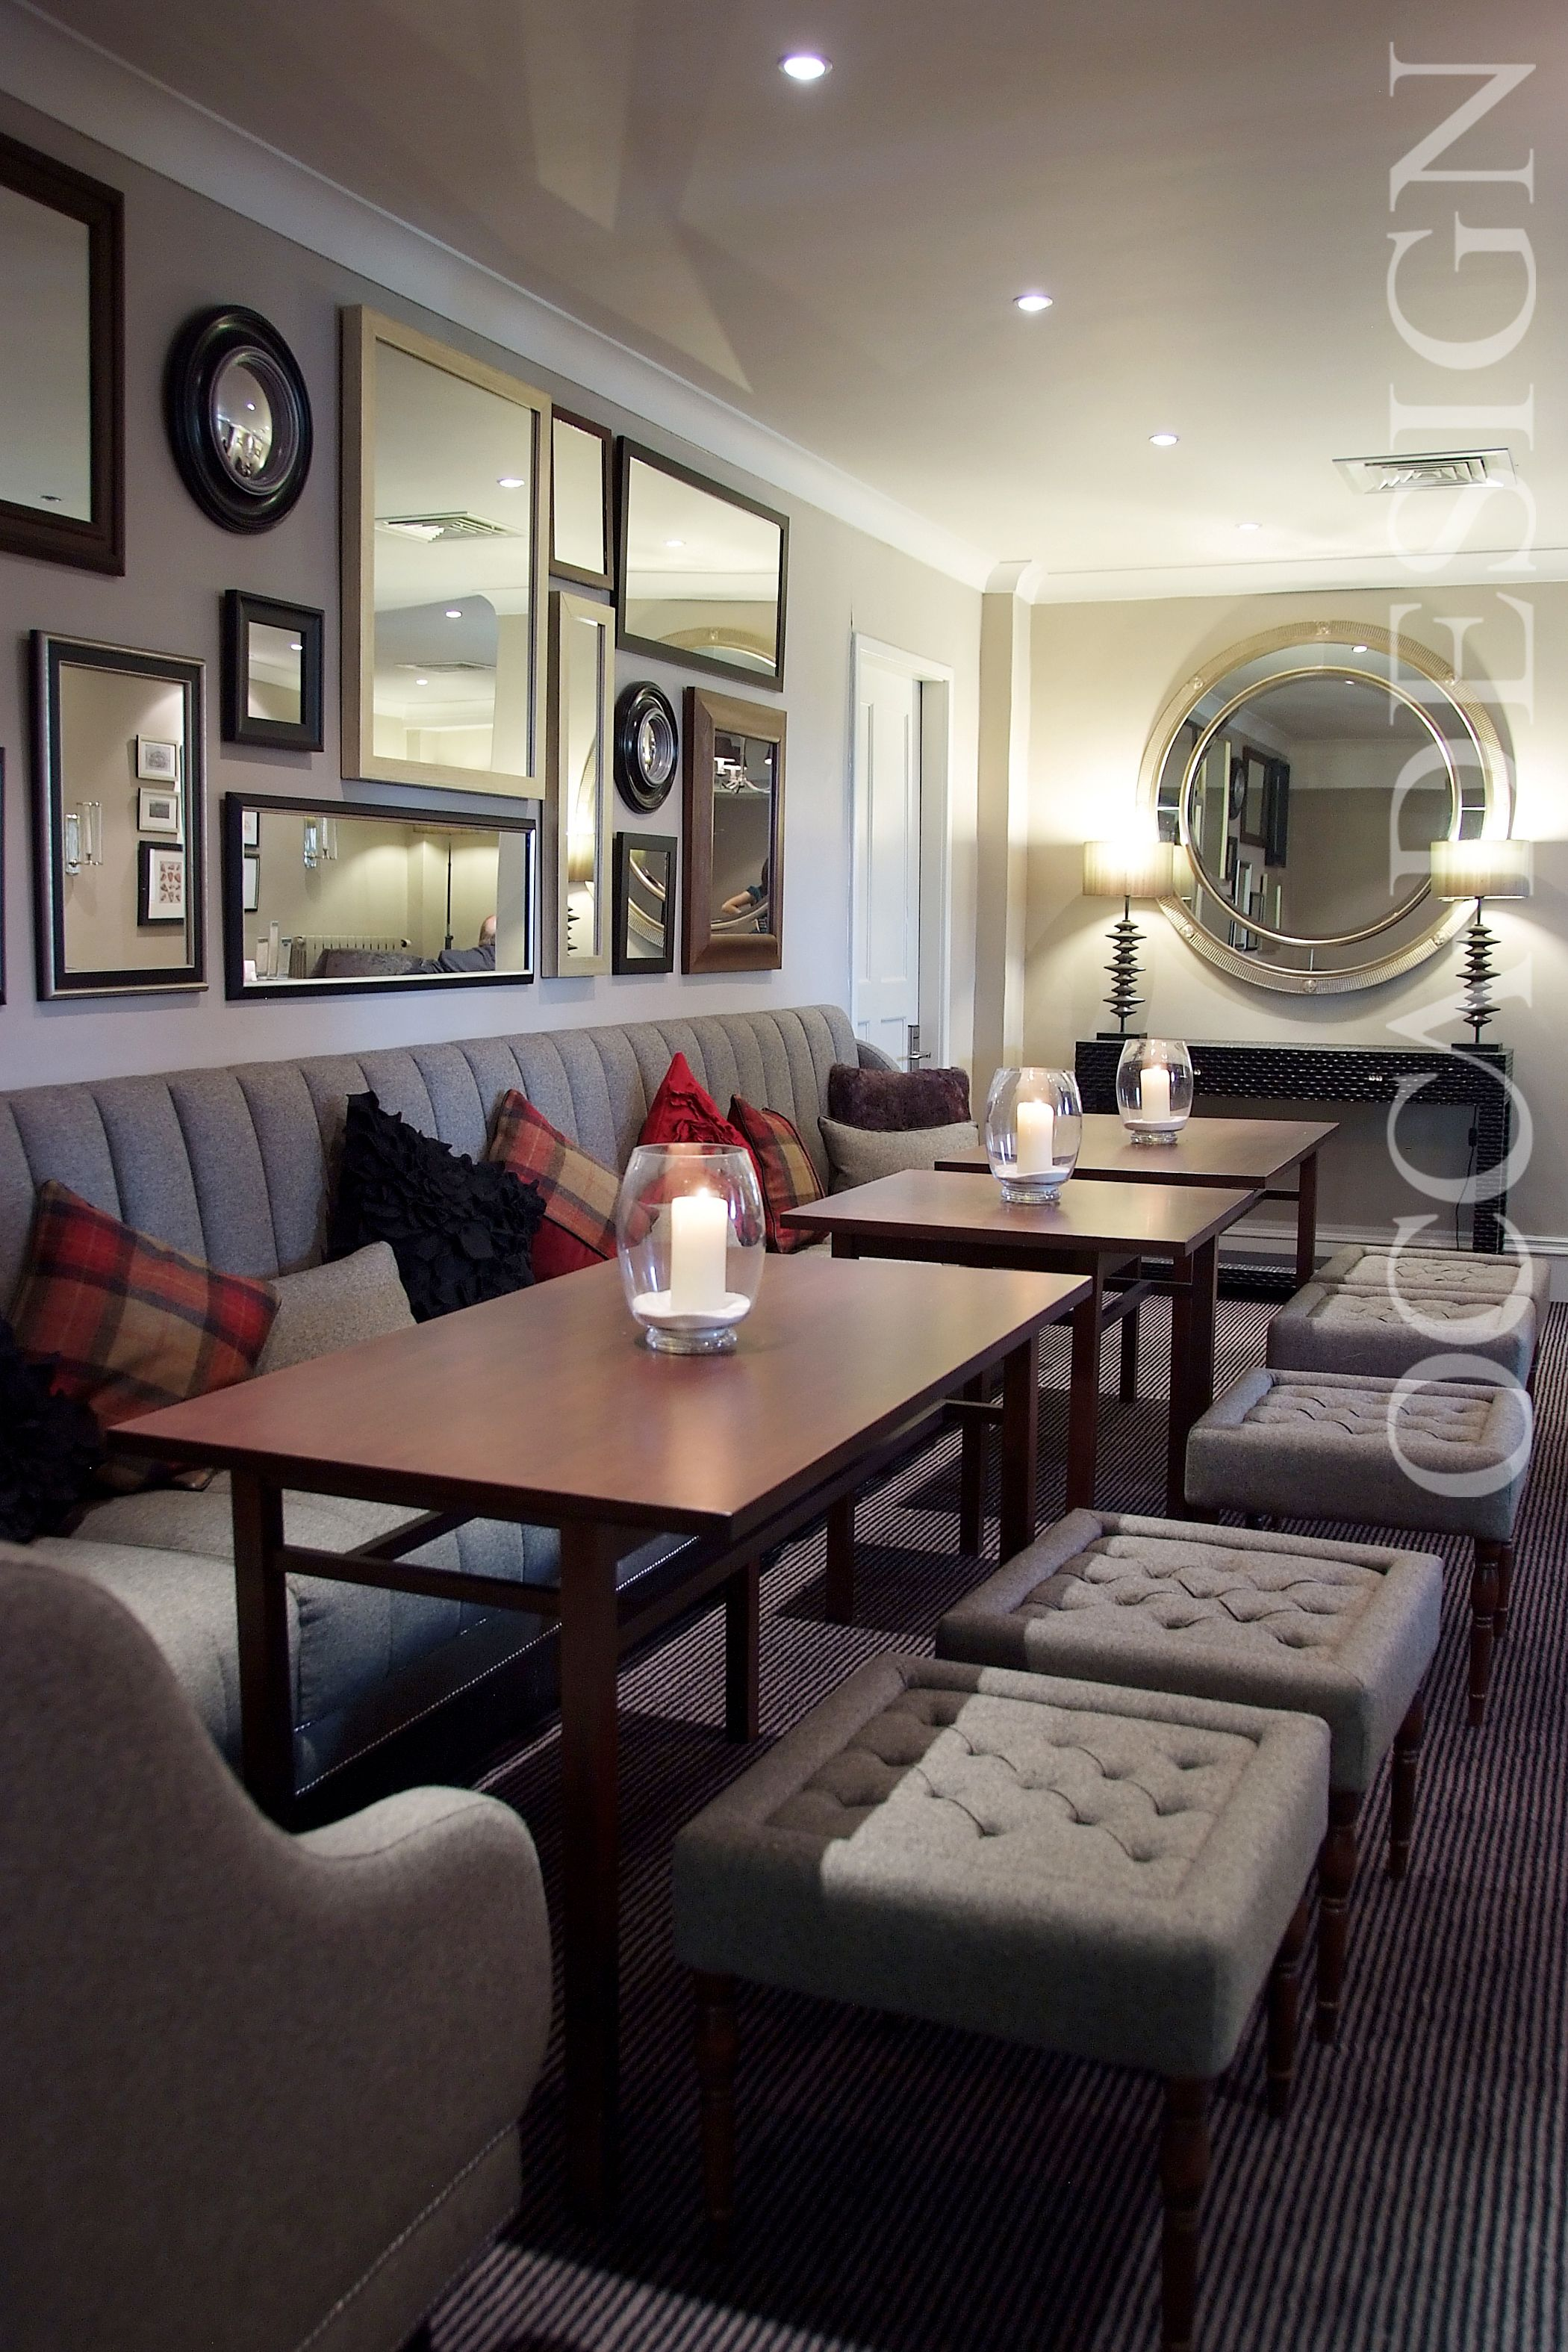 Bar Interior, Lounge Interior, Hotel Restaurant Interior, Scottish Hotel Interior, Bfixed seating, Banquette Seating, Grey & Red, MIrror Collection, The Landmark Hotel, Dundee, BDL Hotels